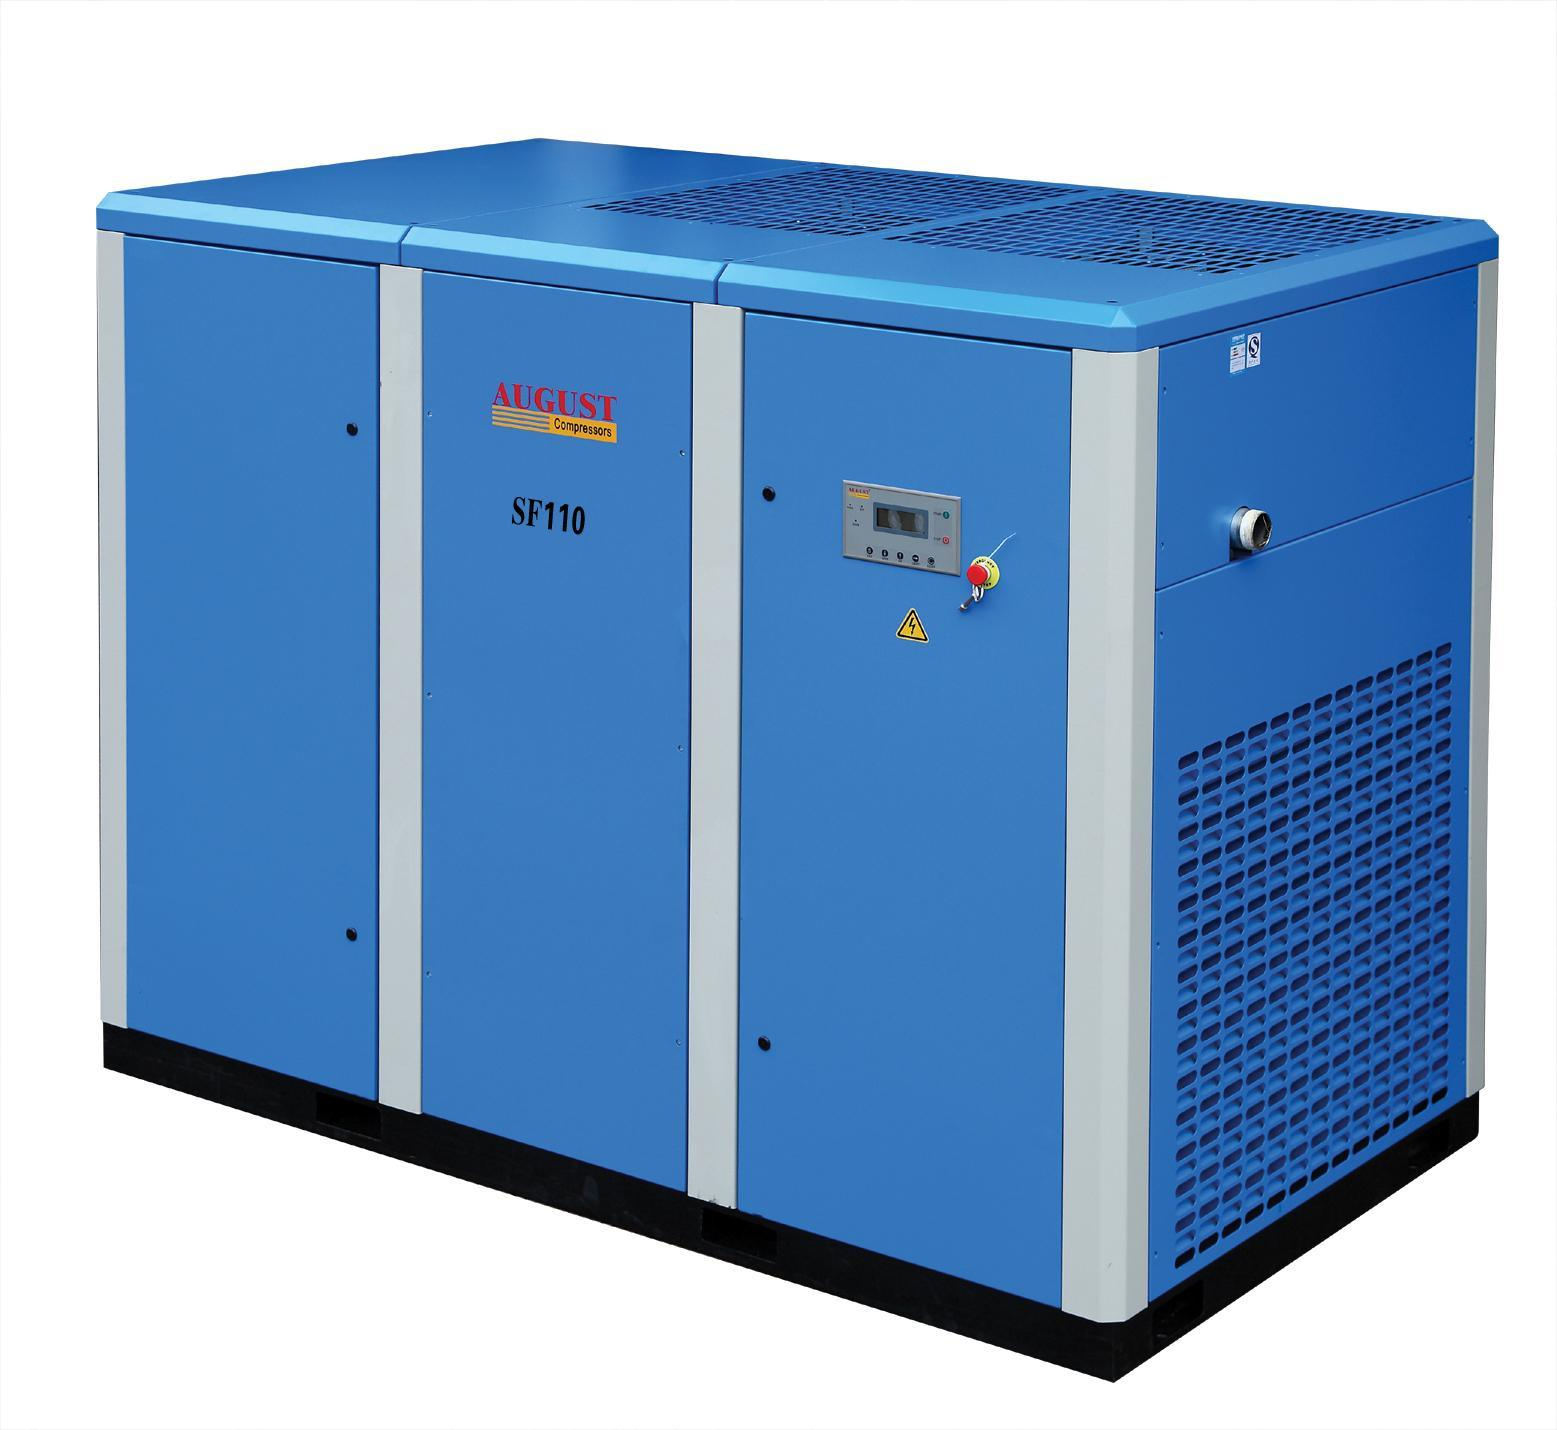 110kw/150HP August Stationary Air Cooled Screw Compressor